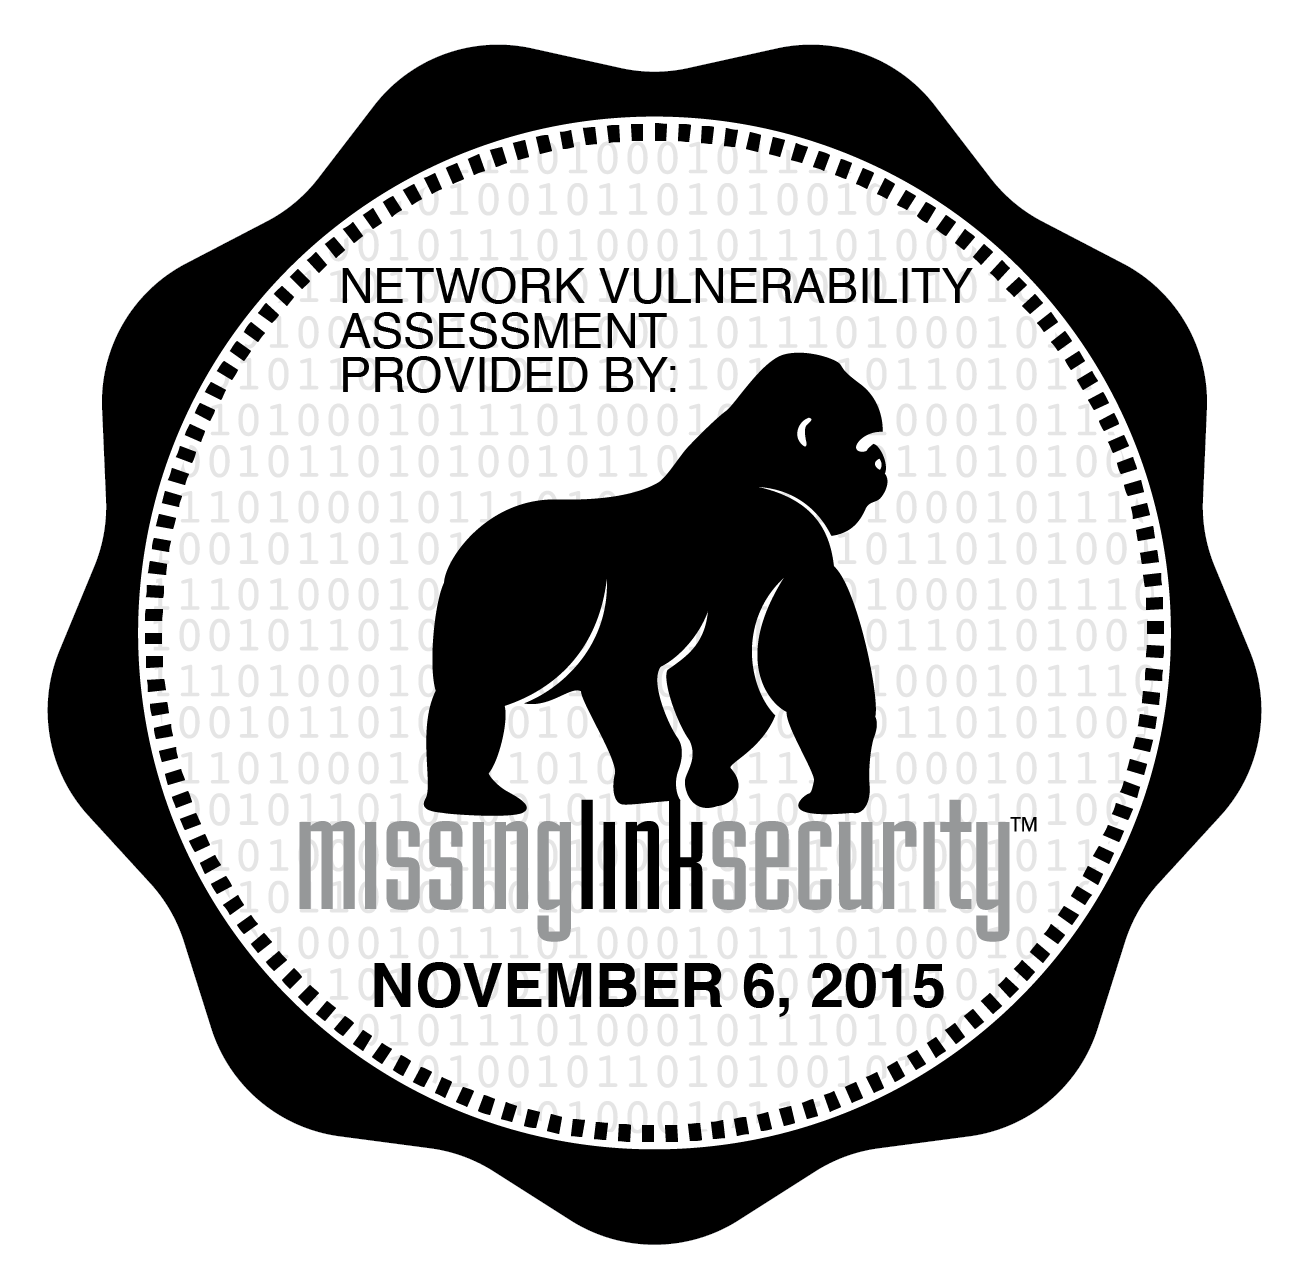 Routine Cyber-security and anti-hacking checks by Missing Link Security